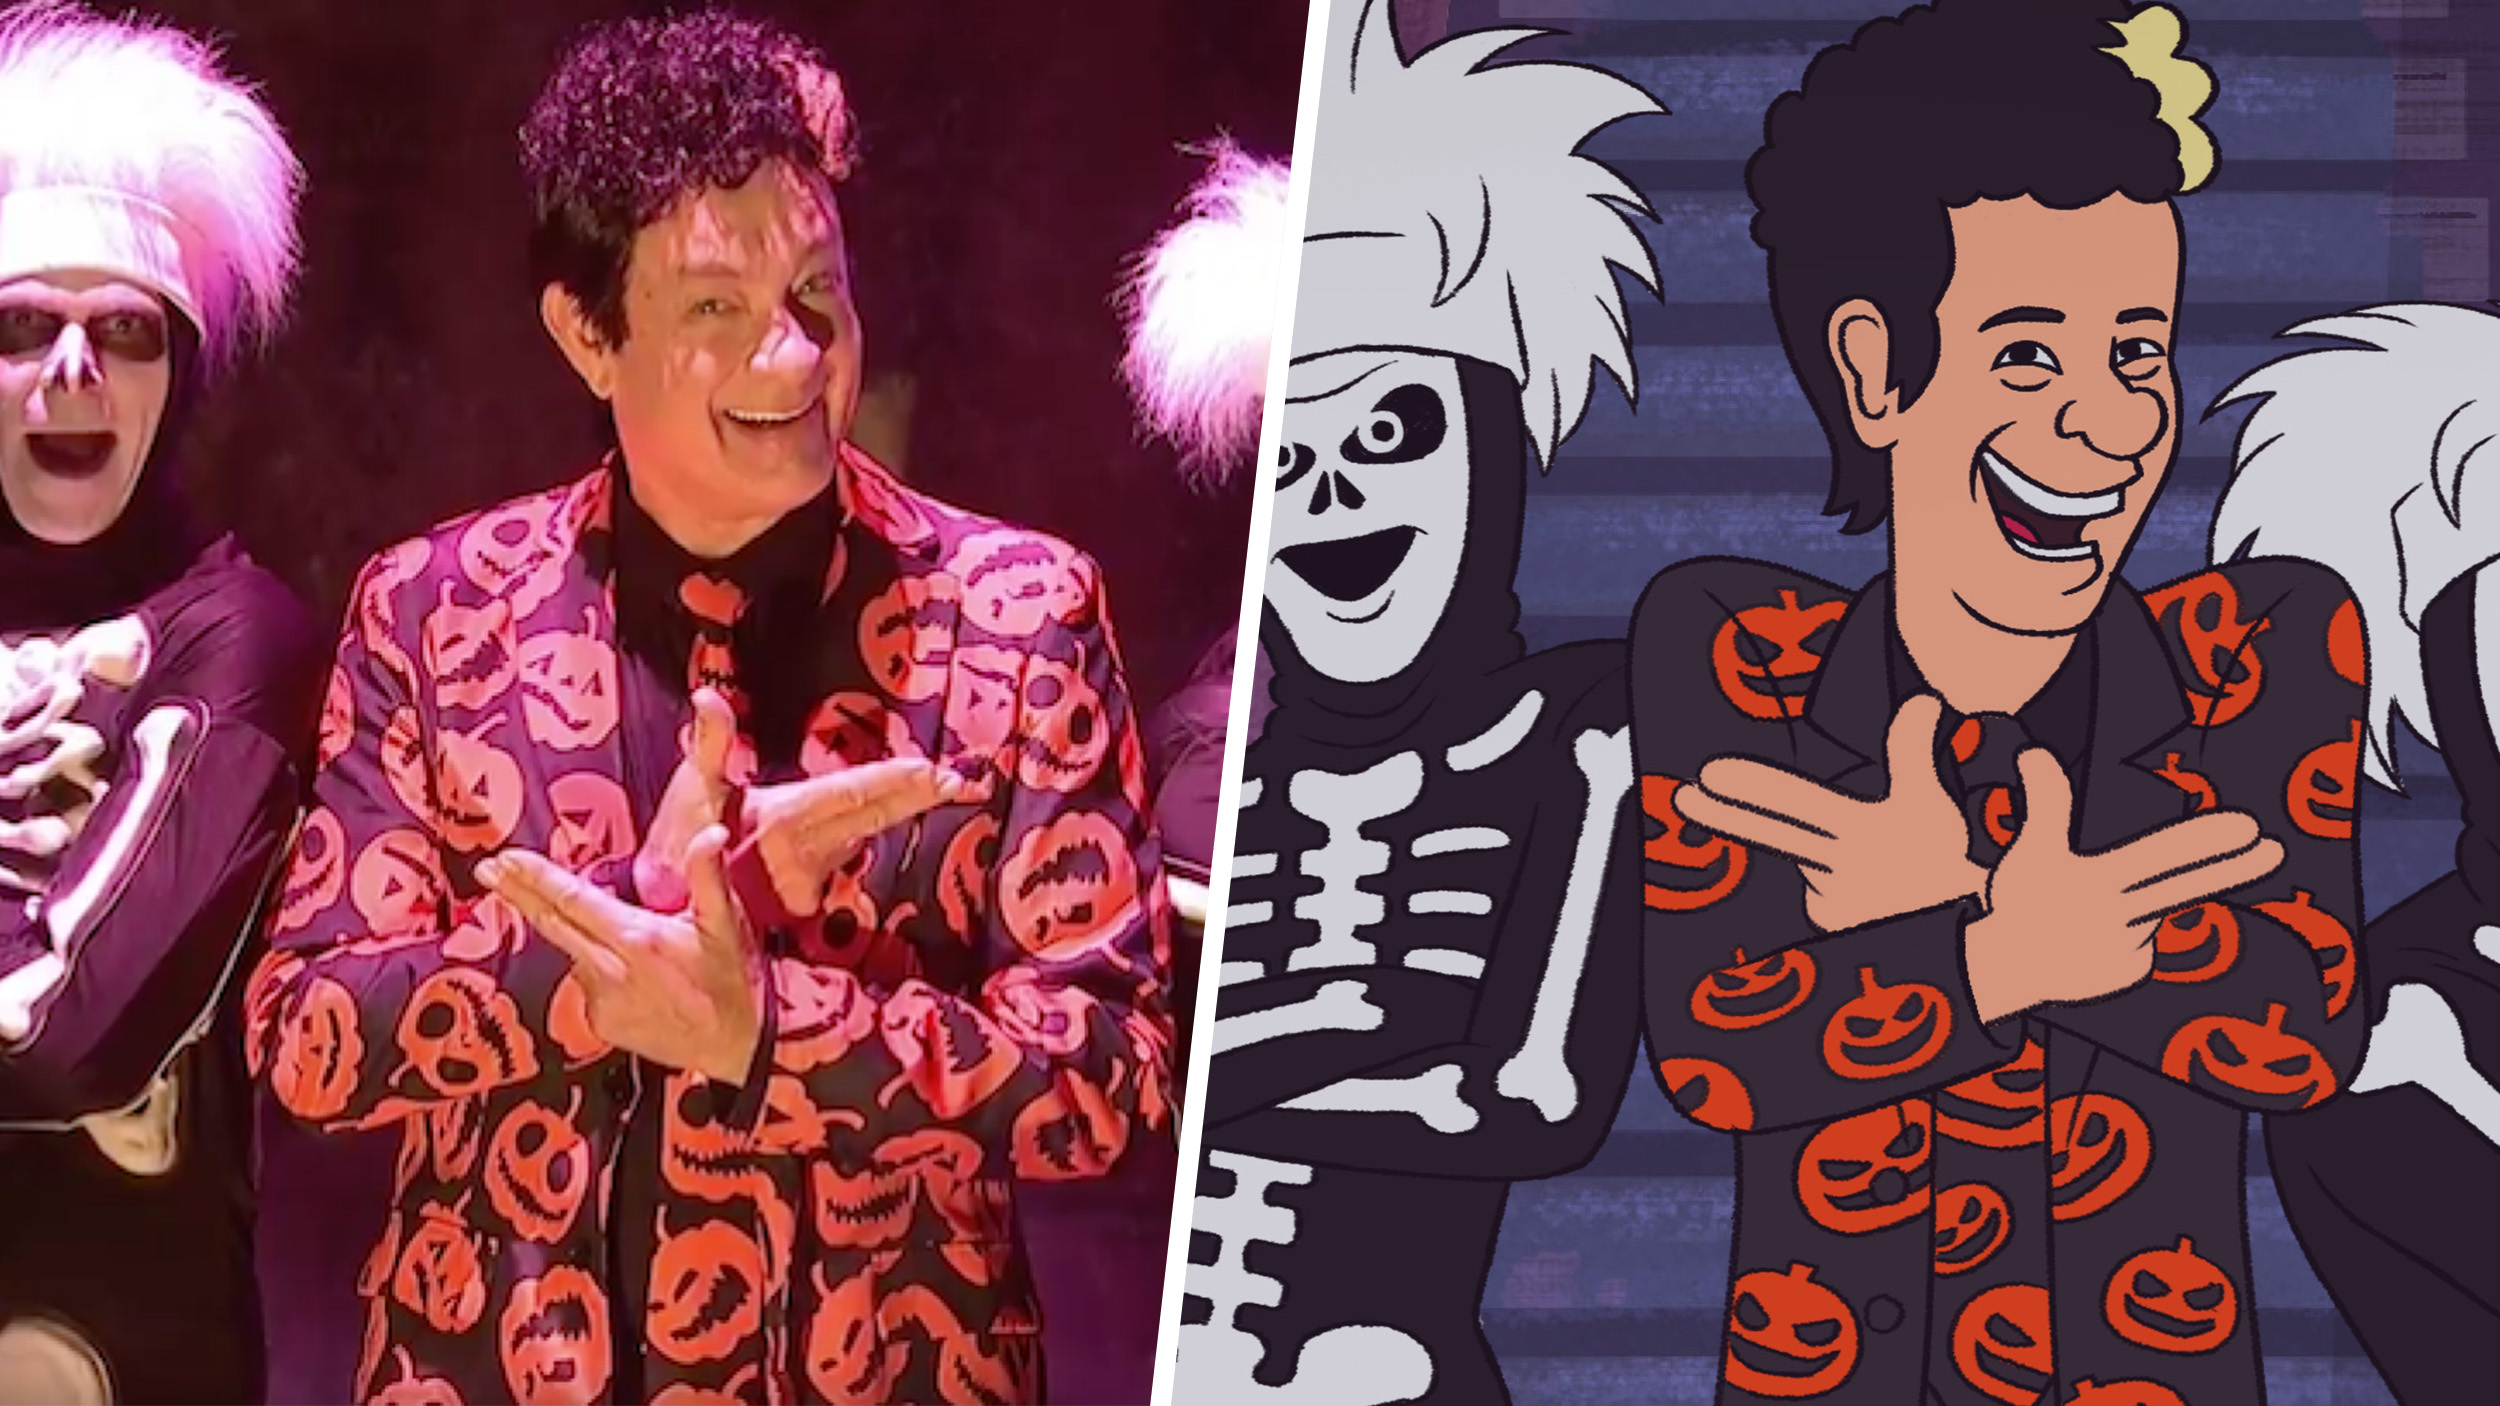 Will David S Pumpkins Halloween Special Be On In 2020 Tom Hanks will reprise David S. Pumpkins for animated Halloween